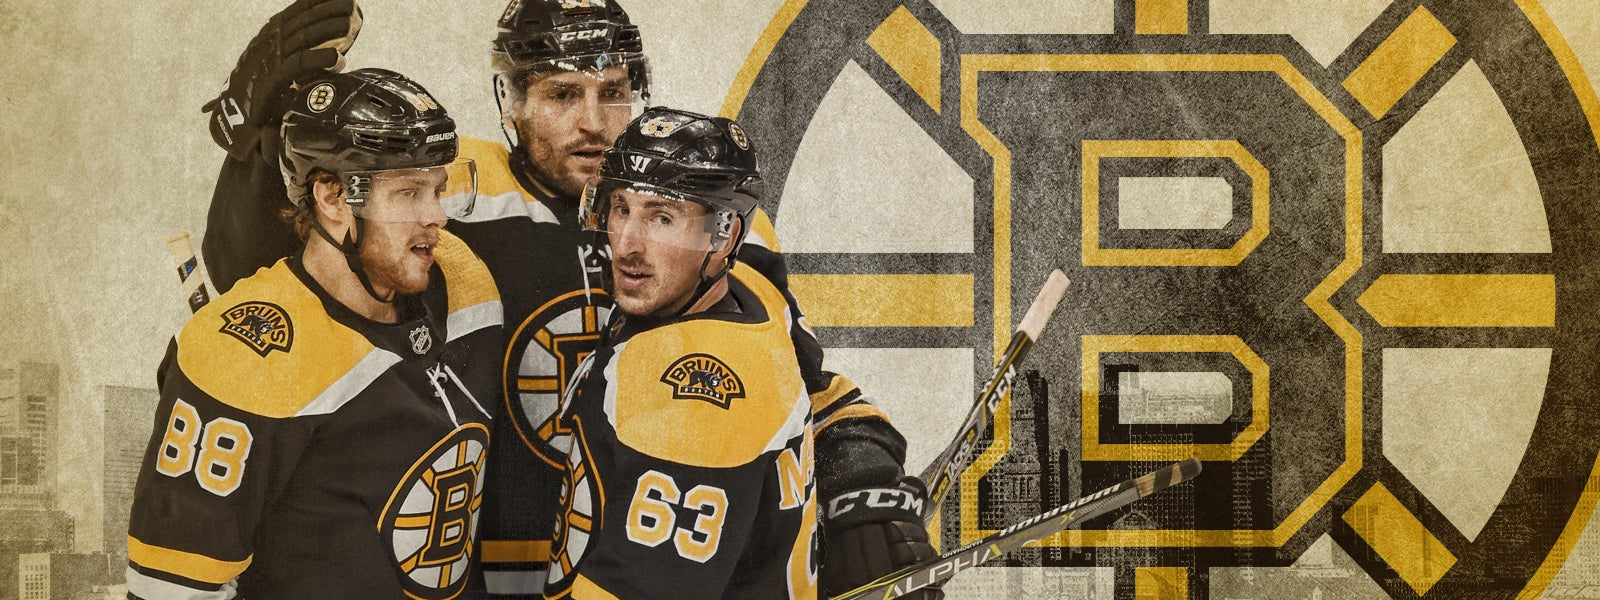 Bruins vs. Wild